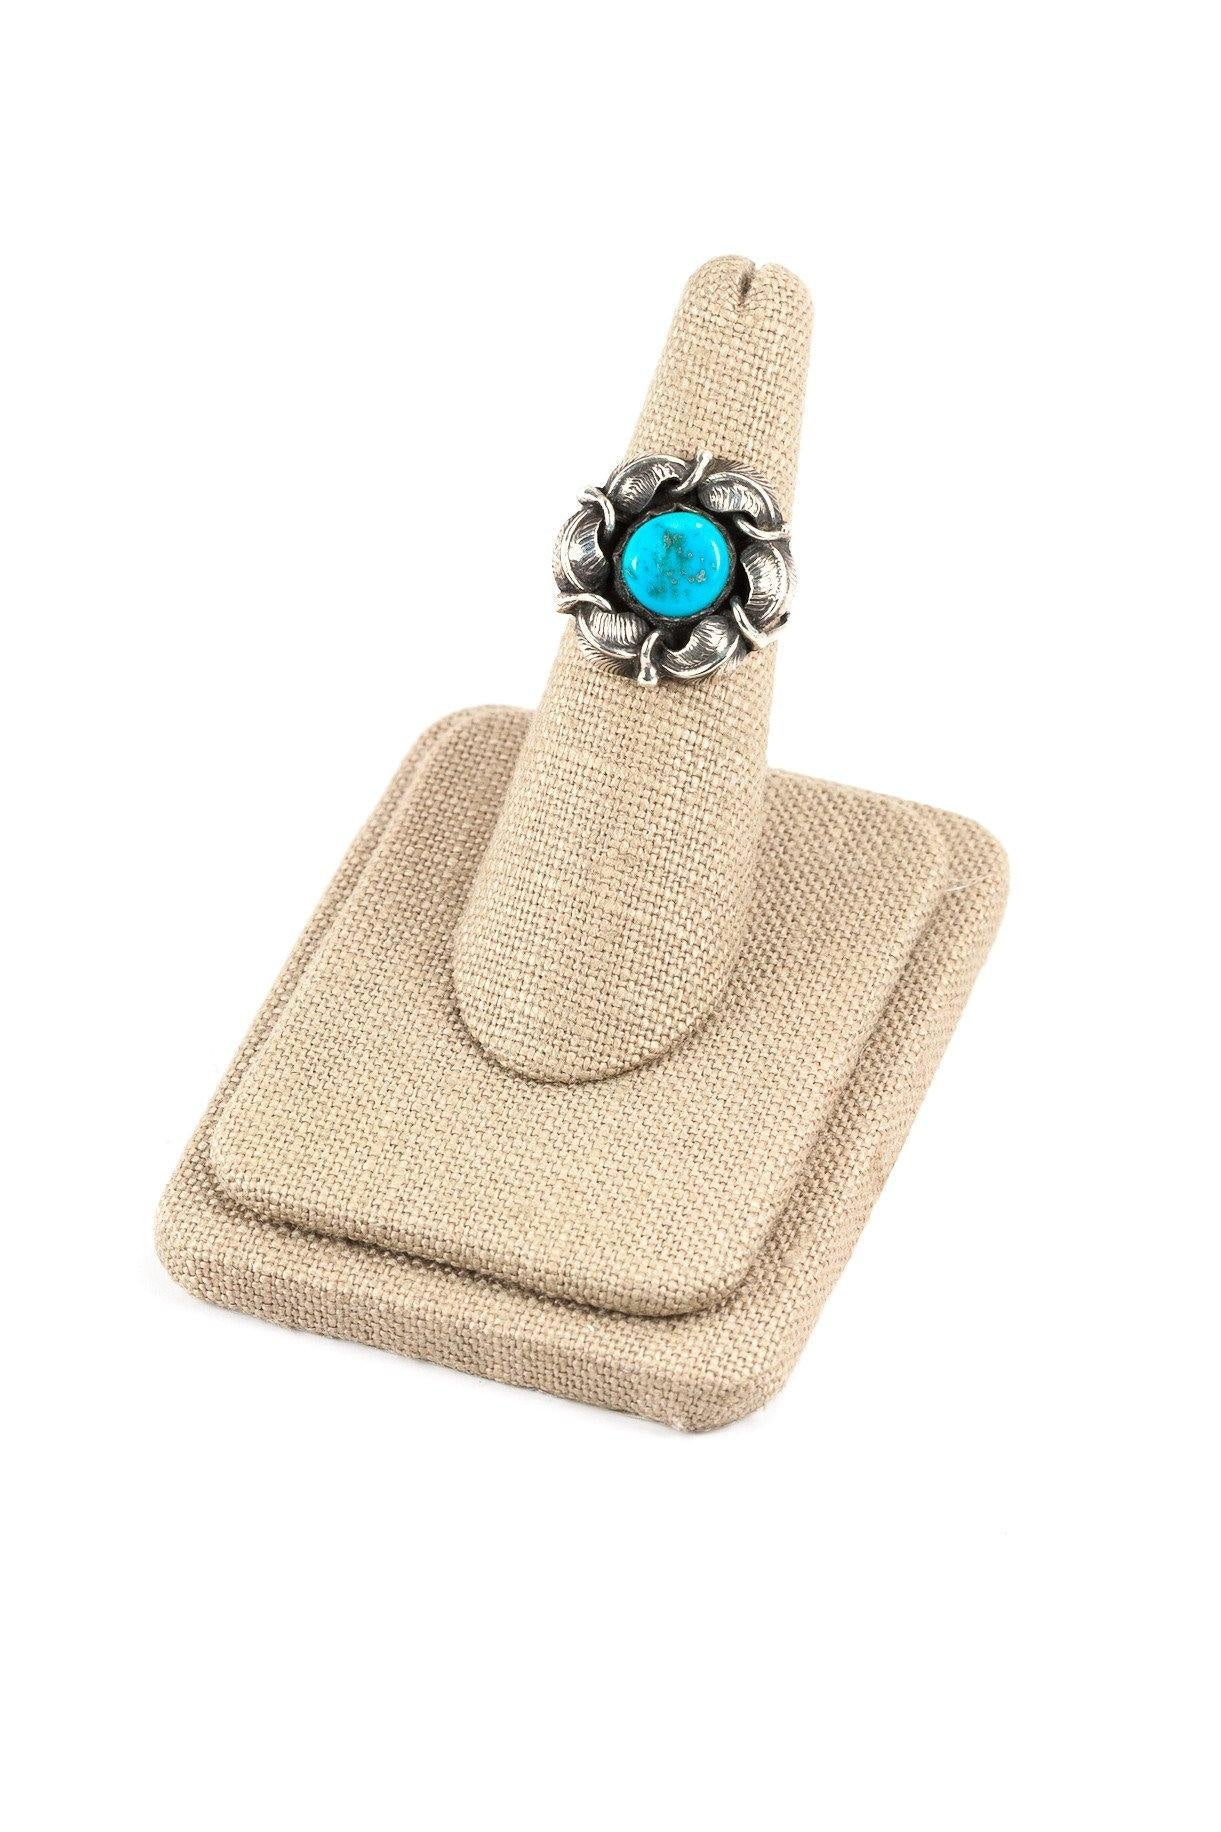 50's__Vintage__Turquoise Sterling Ring sz 6